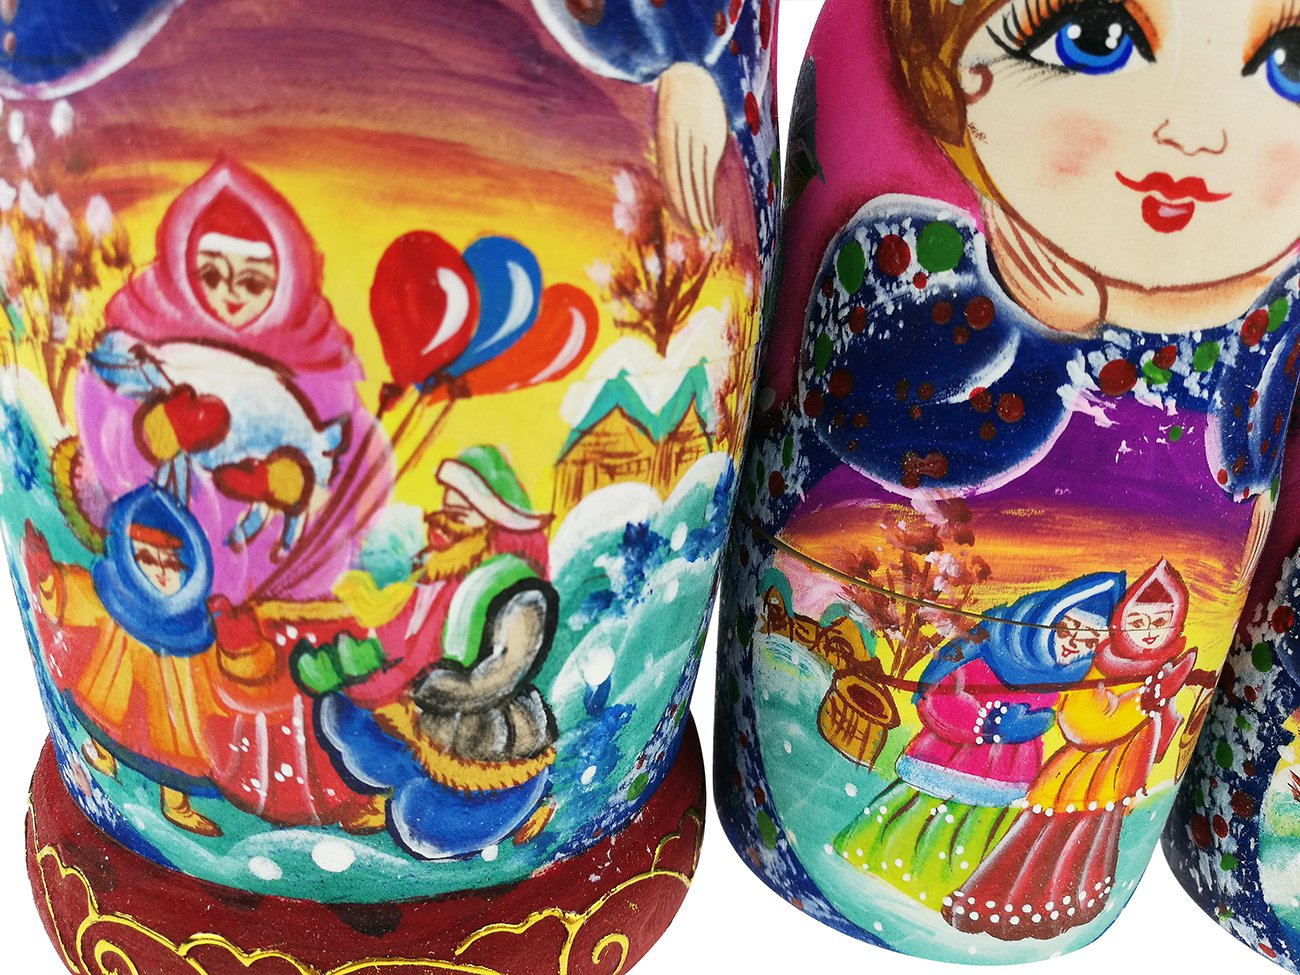 Beautiful Color Cute Little Girl Fairy Tale Handmade Wooden Russian Nesting Dolls Matryoshka Dolls Set 7 Pieces for Kid Toy Birthday Home Decoration by Winterworm (Image #7)